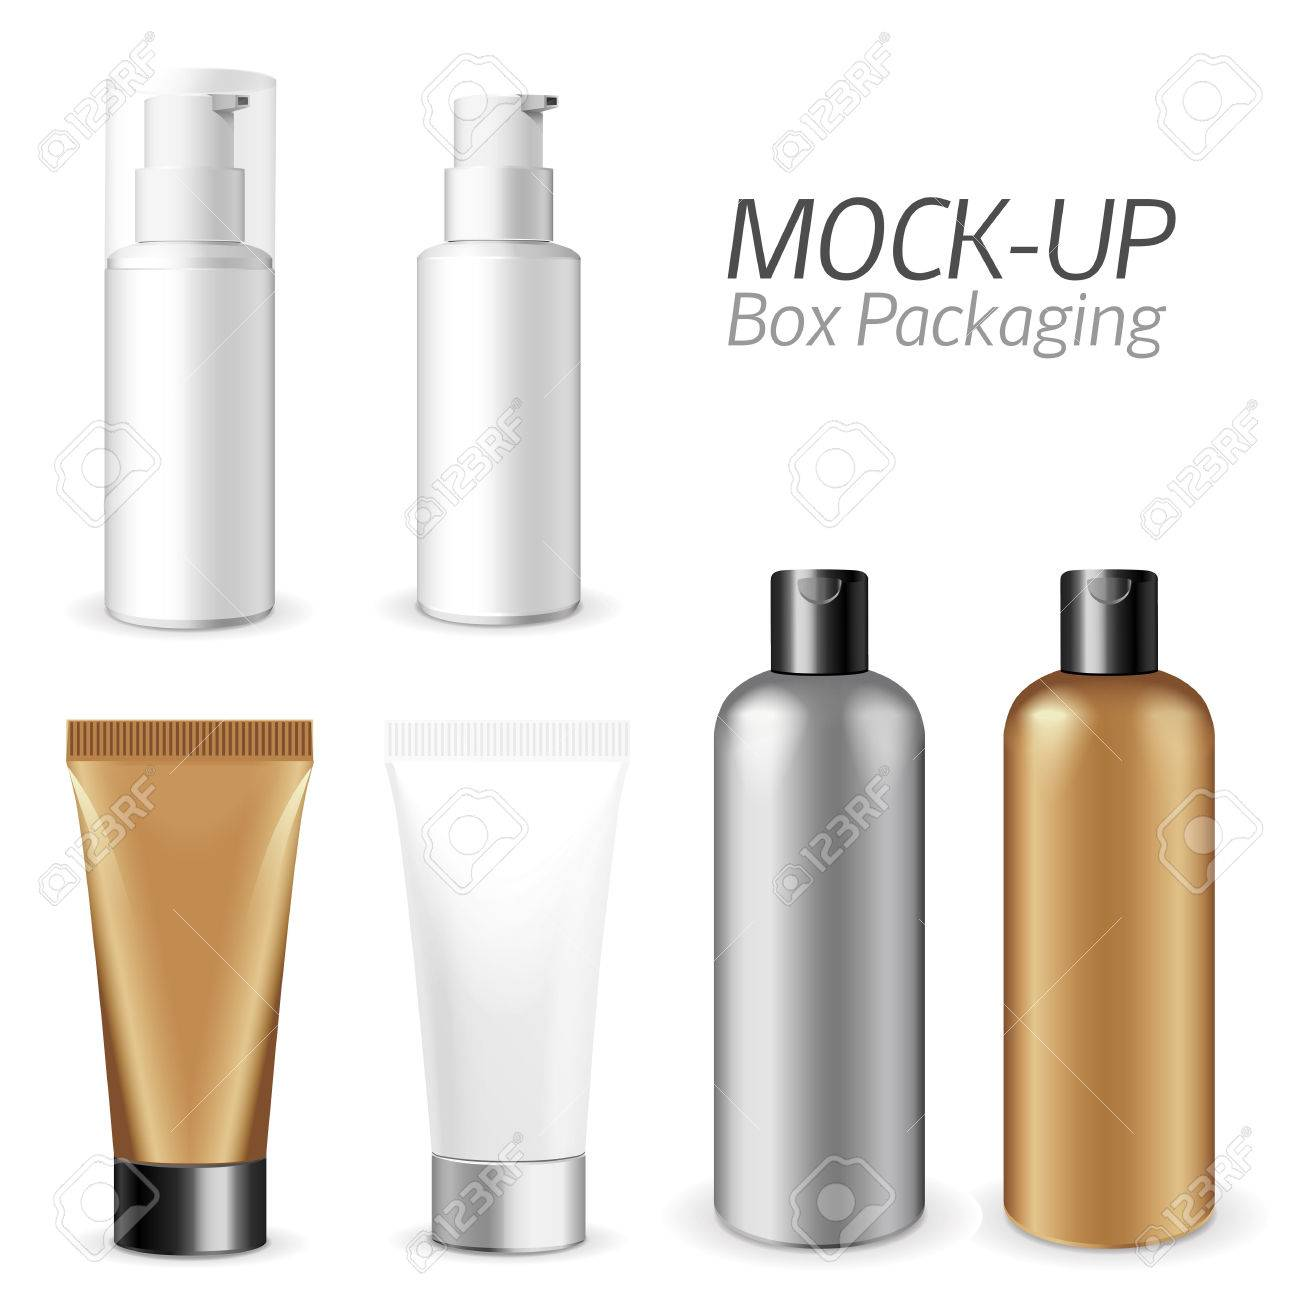 Make up. Tube of cream or gel white plastic product. Container, product and packaging. White background. - 47837901